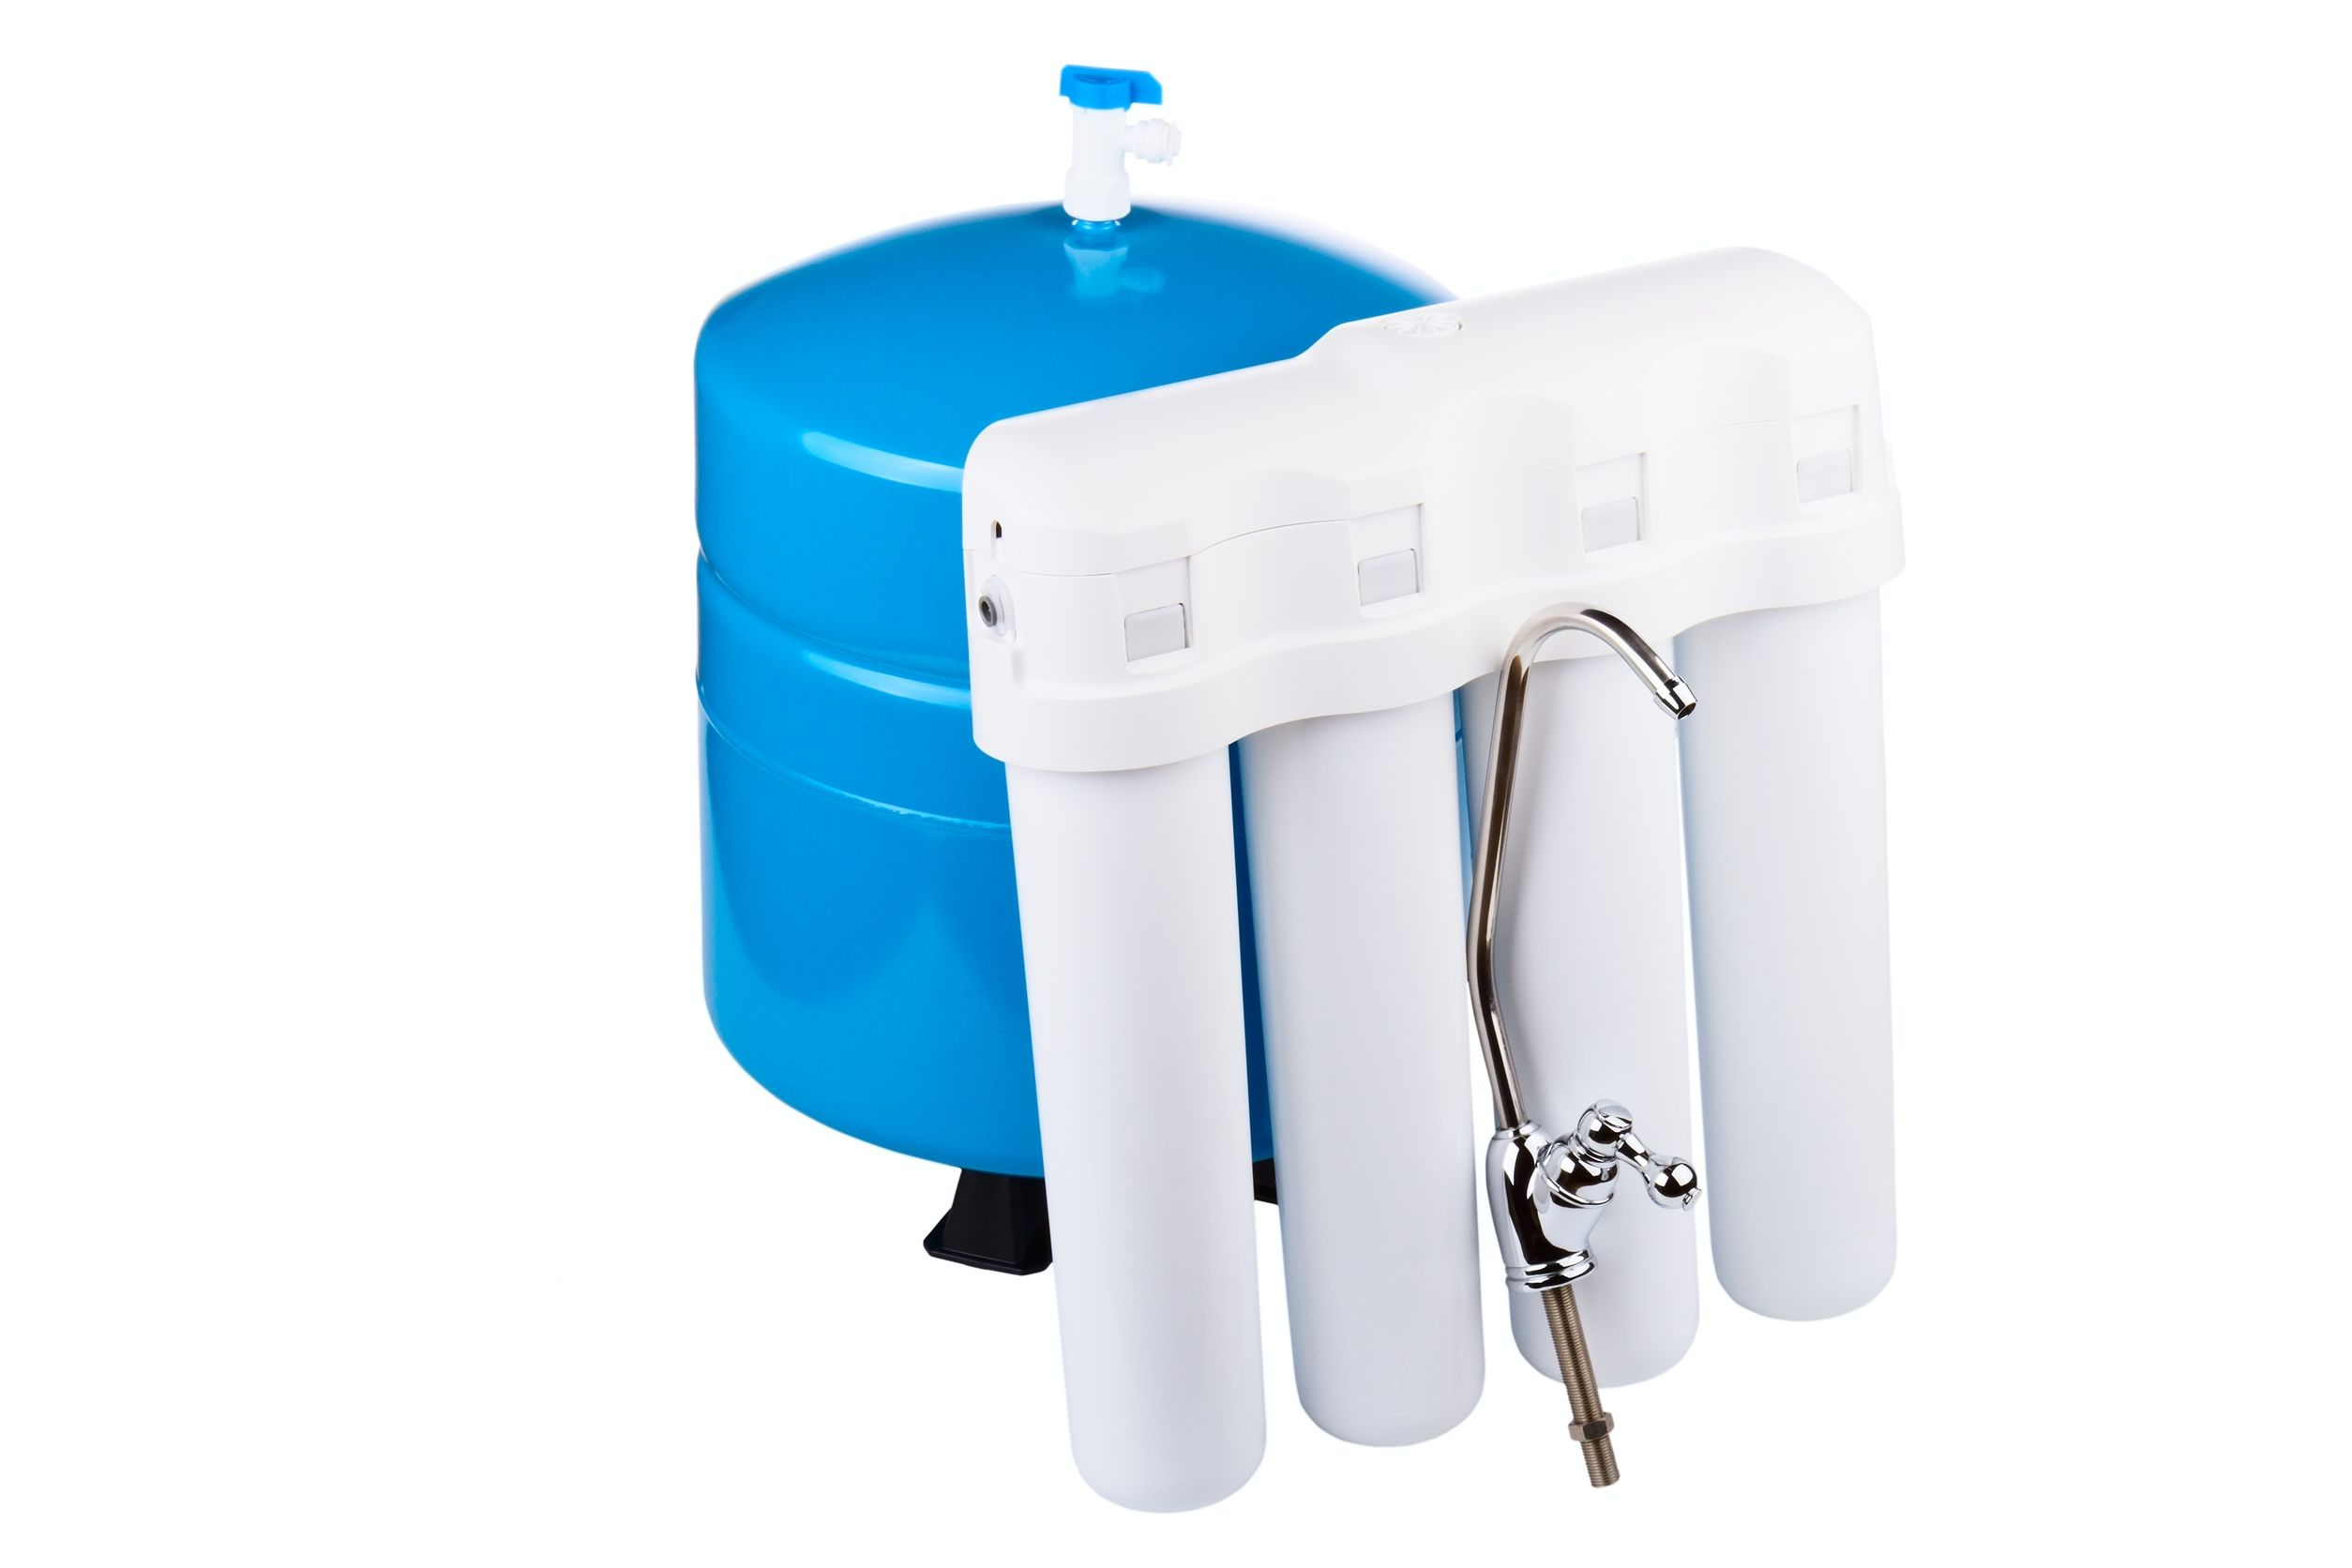 12469979 - system of a filtration of potable water isolated on a white background